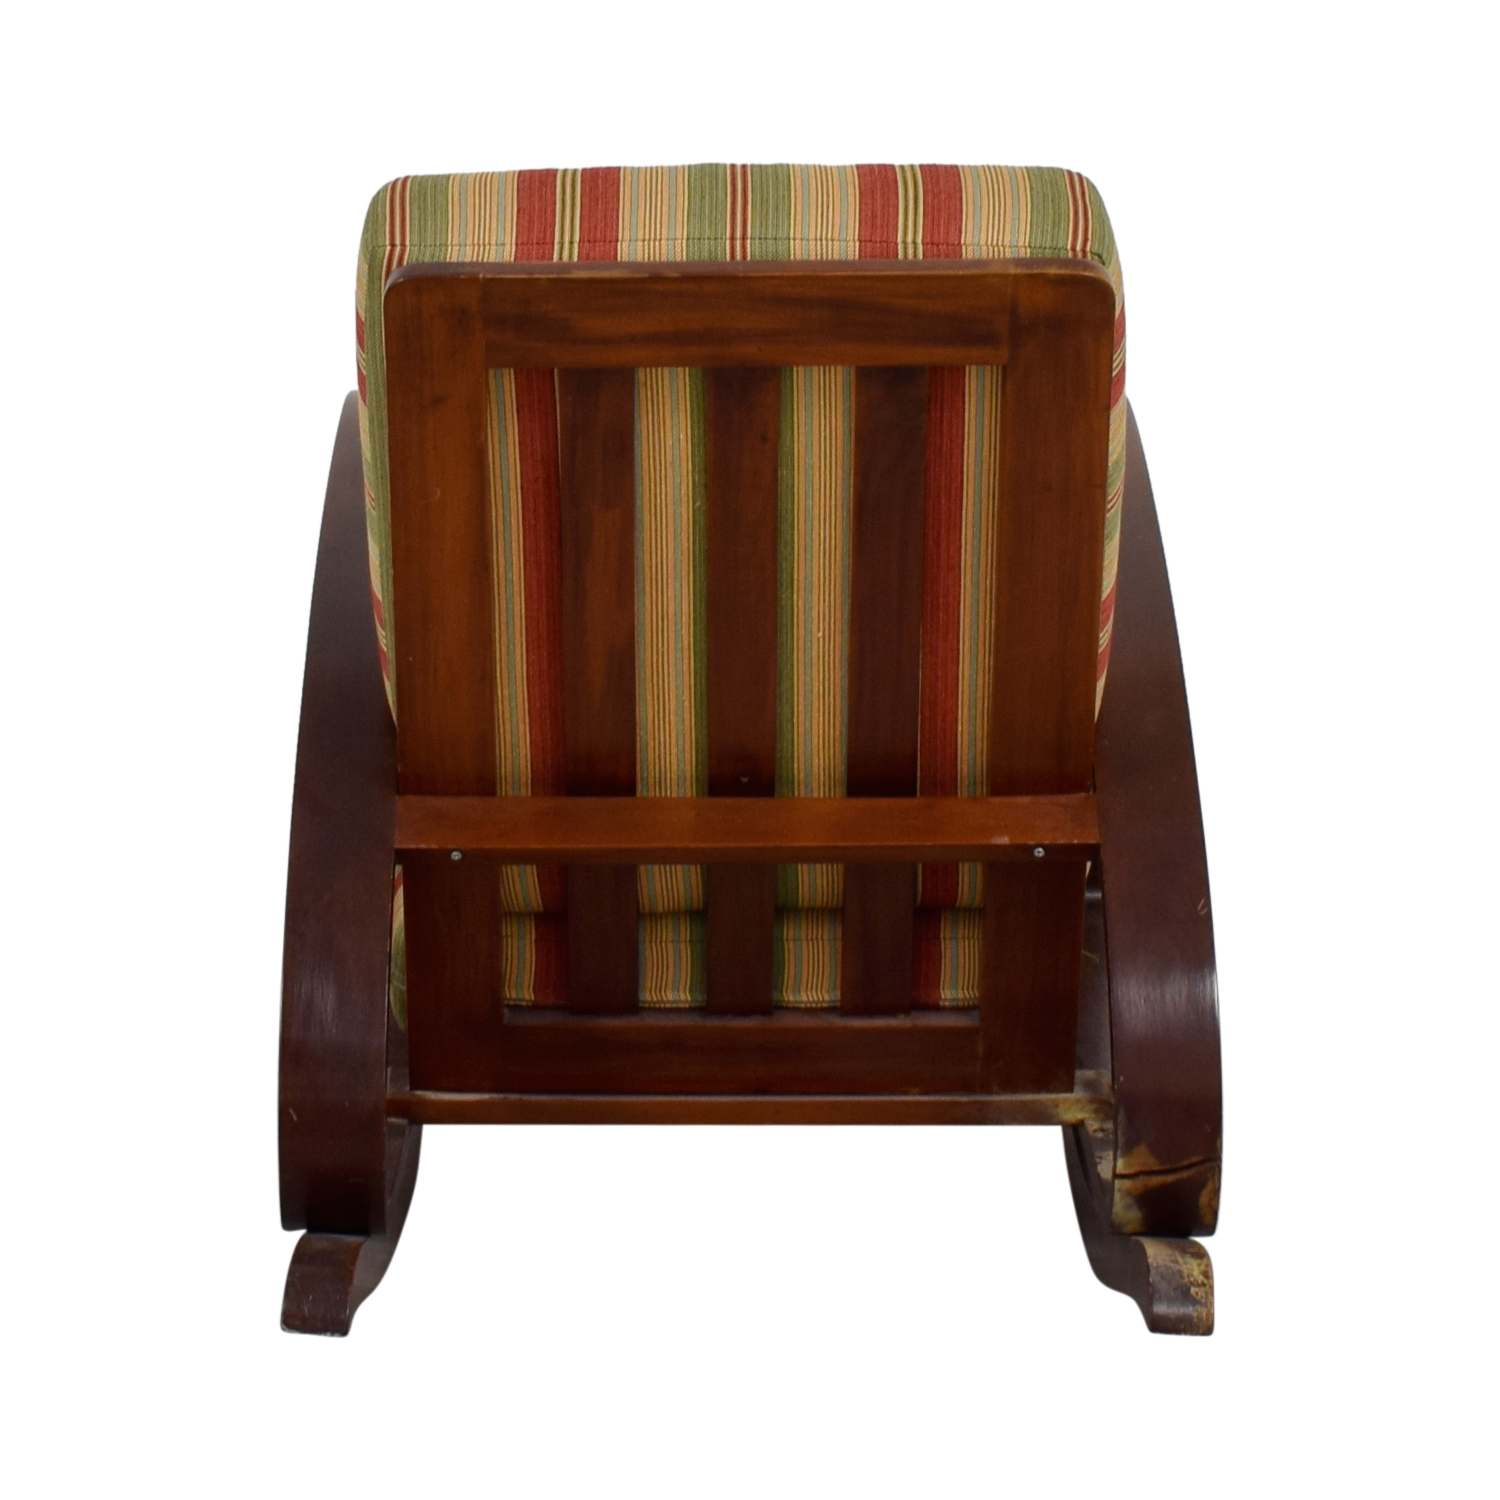 Antique Caribbean Striped Upholstery Wood Rocker nj